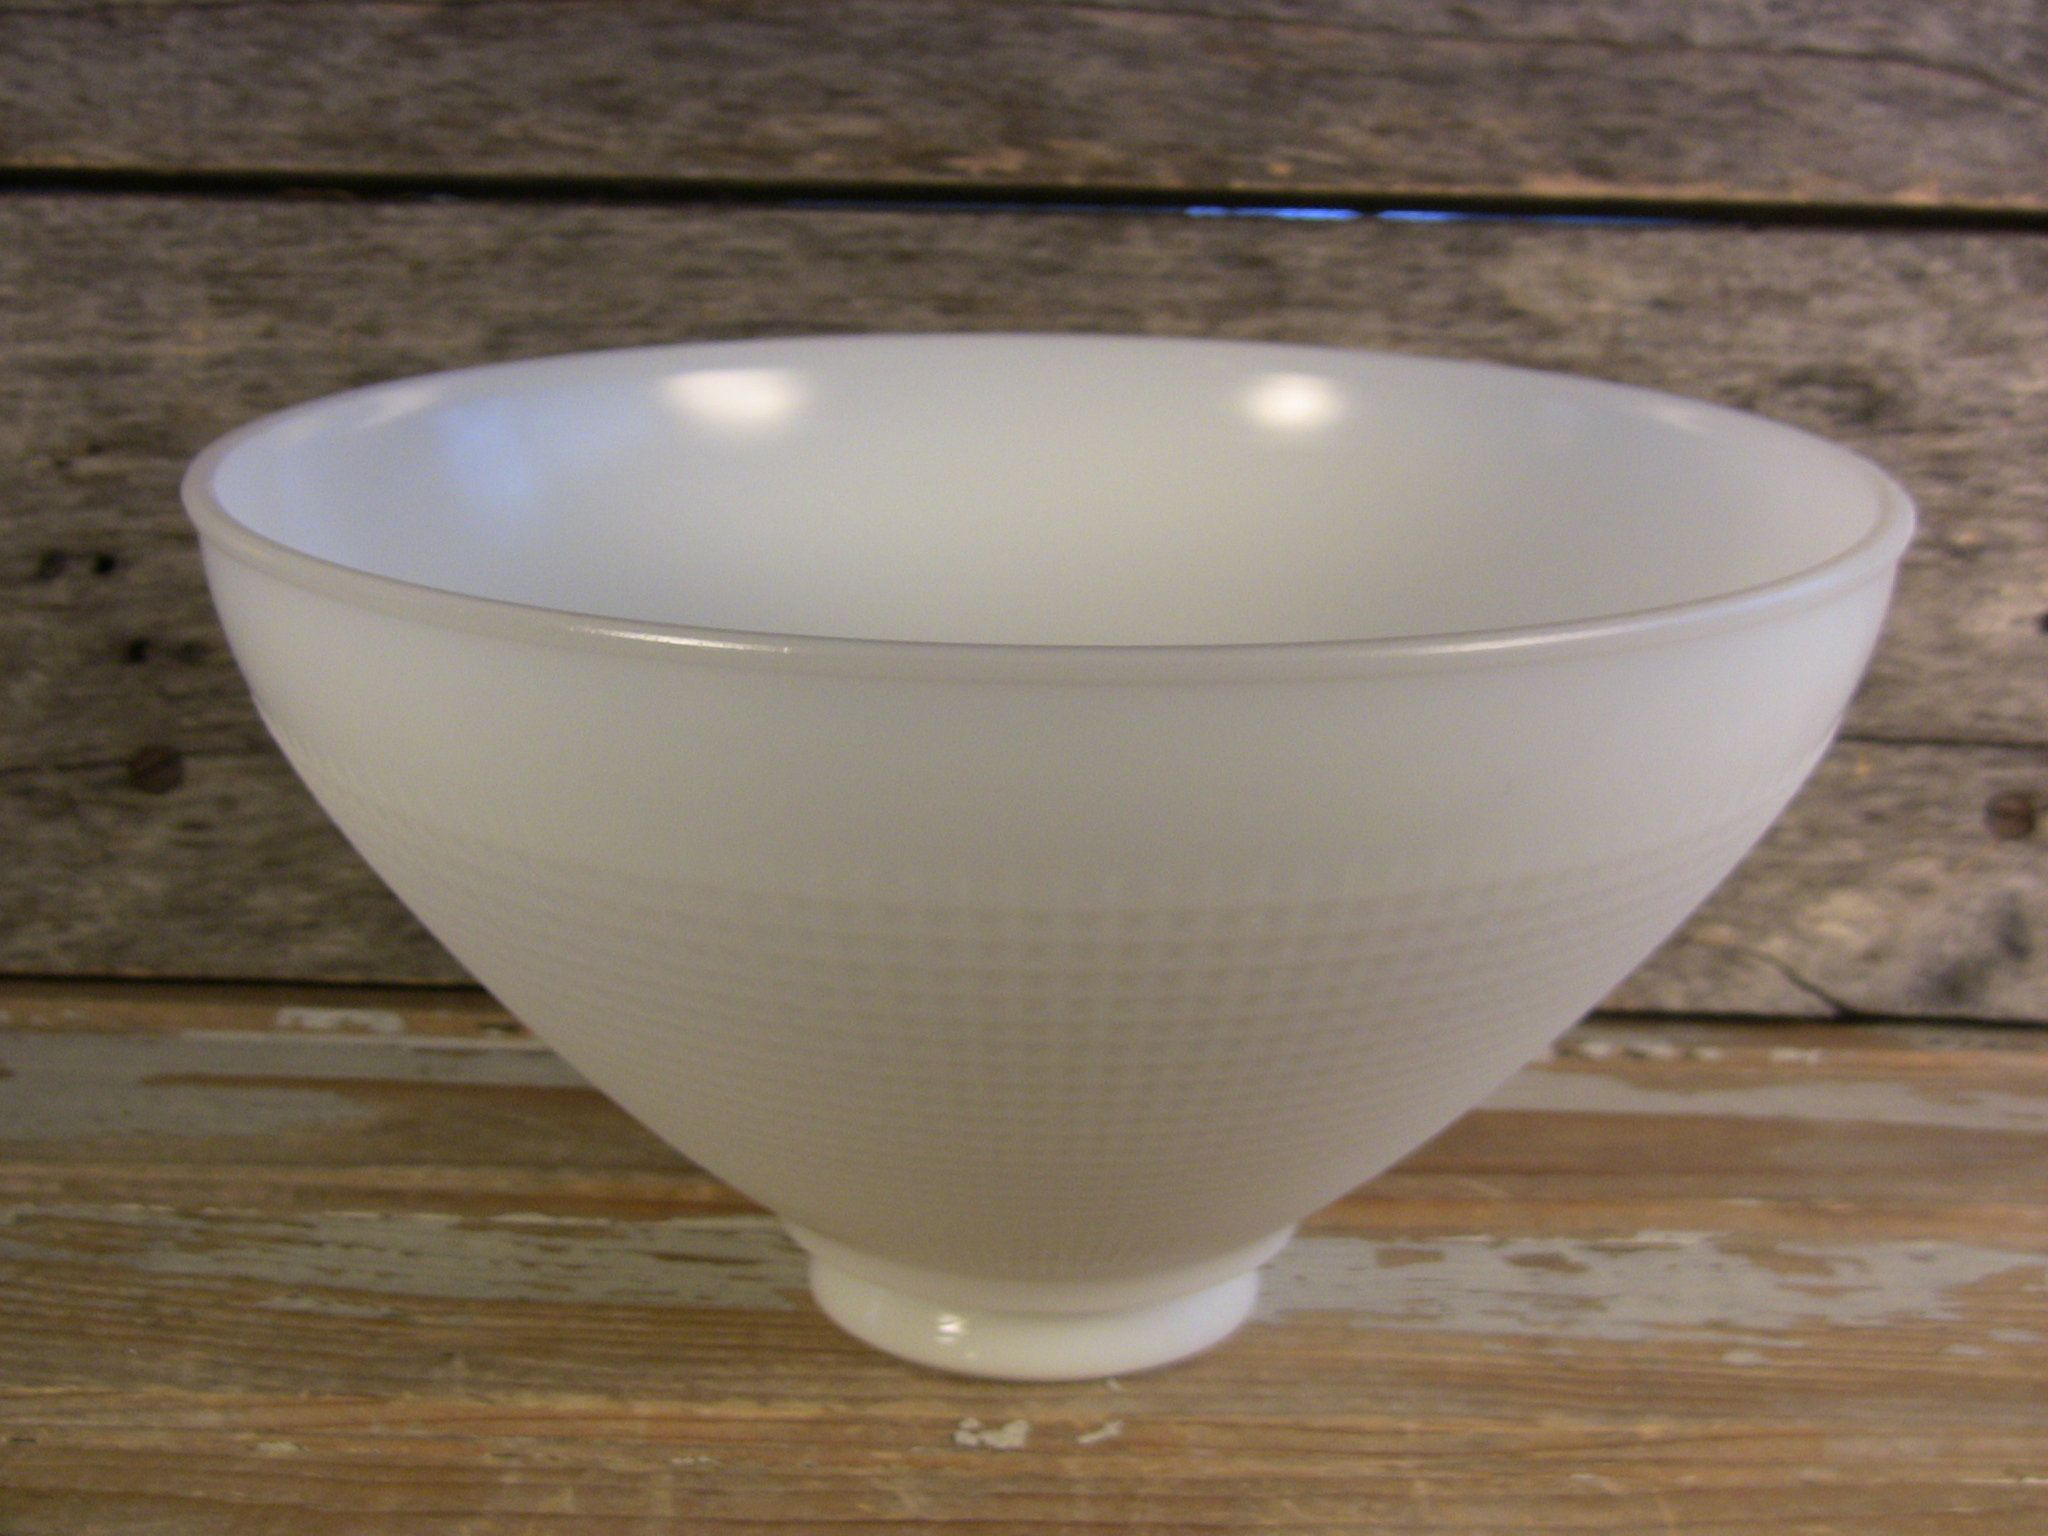 Vintage Milk Glass 10 Torchiere Lamp Shade 2 75 Fitter Fits Mogul Socket Lamps Art Nouveau Reflector Di Vintage Floor Lamp Vintage Lamps Torchiere Lamp Shade